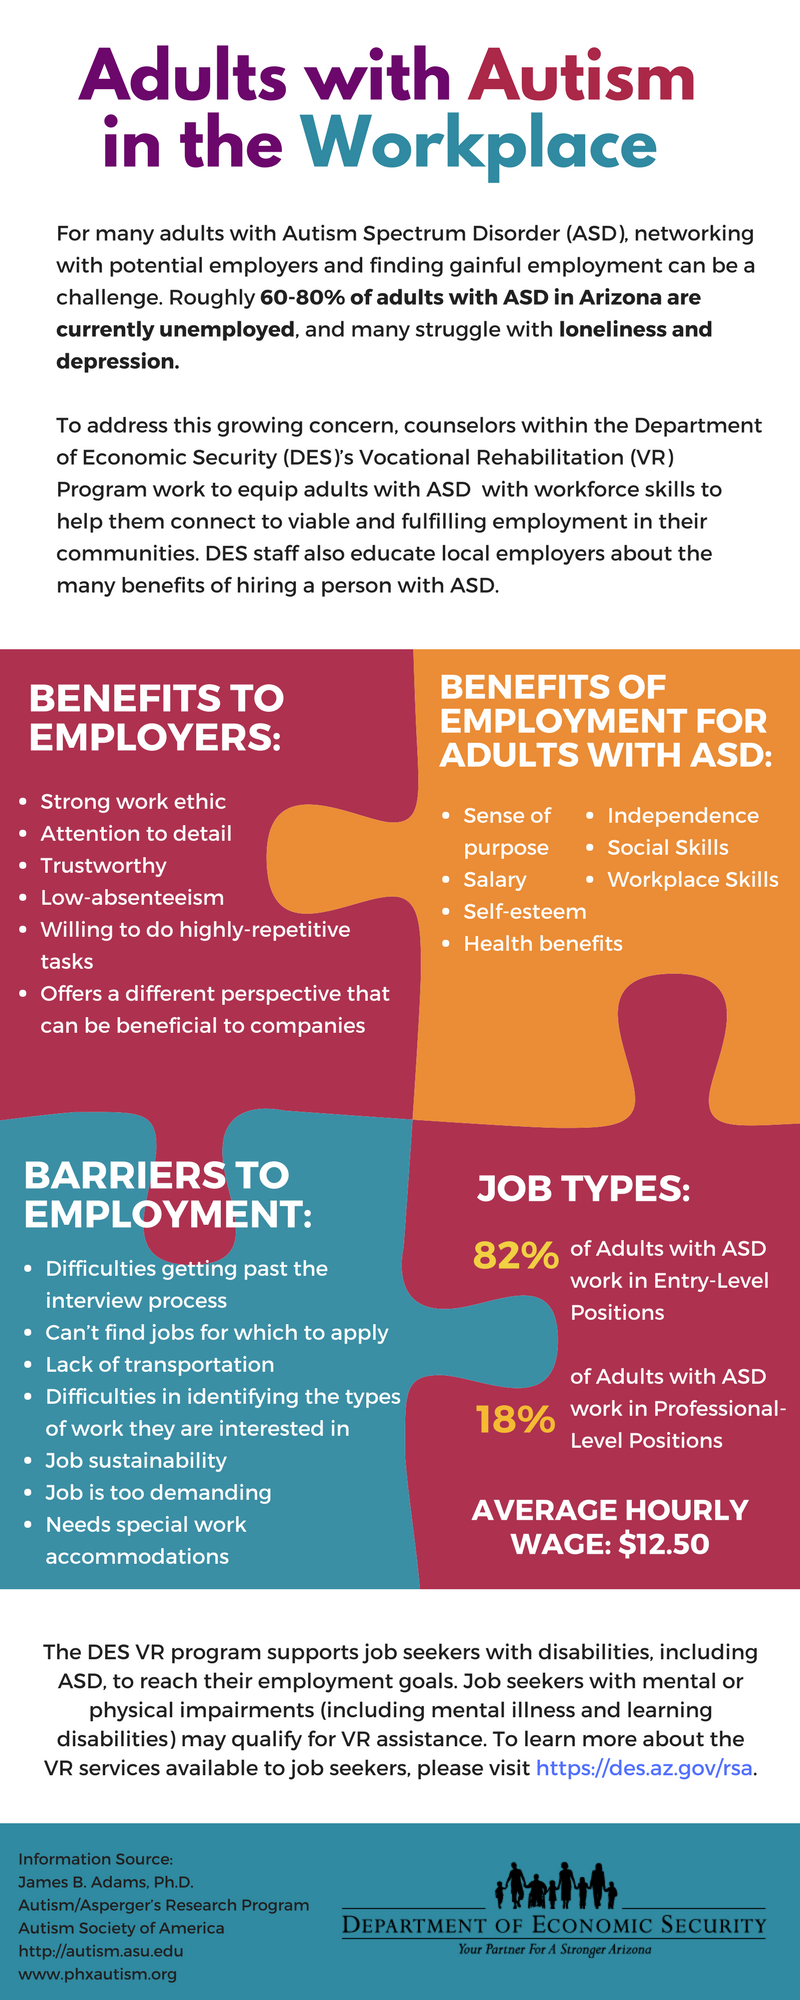 Adults with Autism in the Workplace